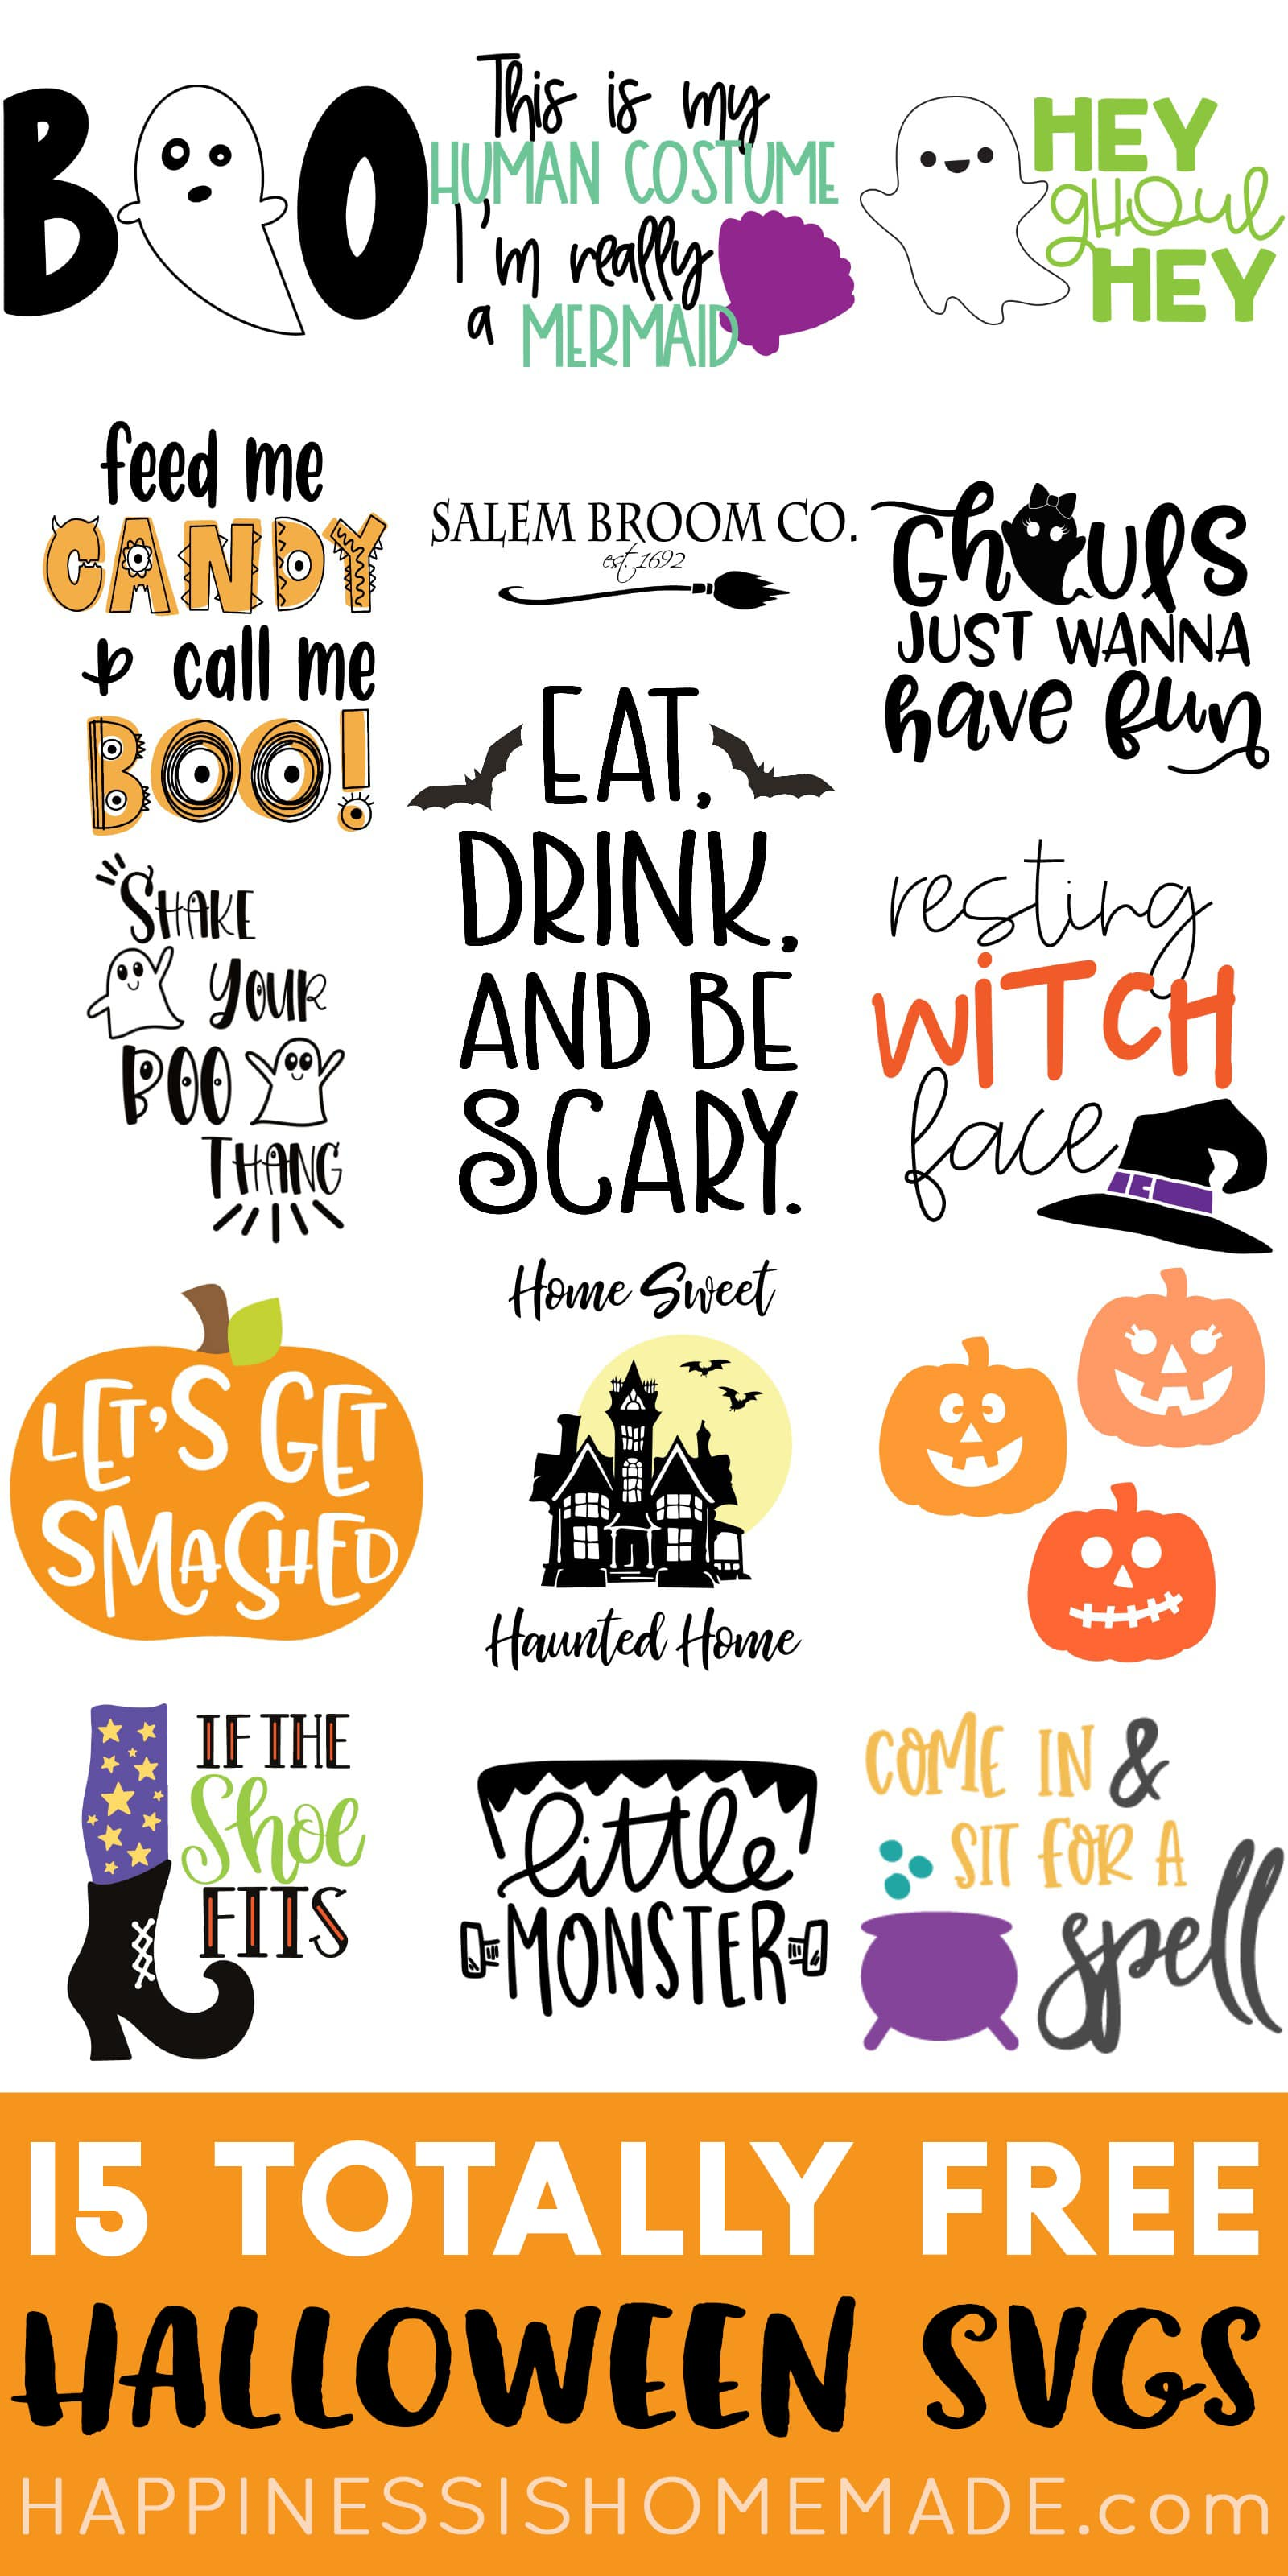 Free Halloween SVGs - Happiness is Homemade